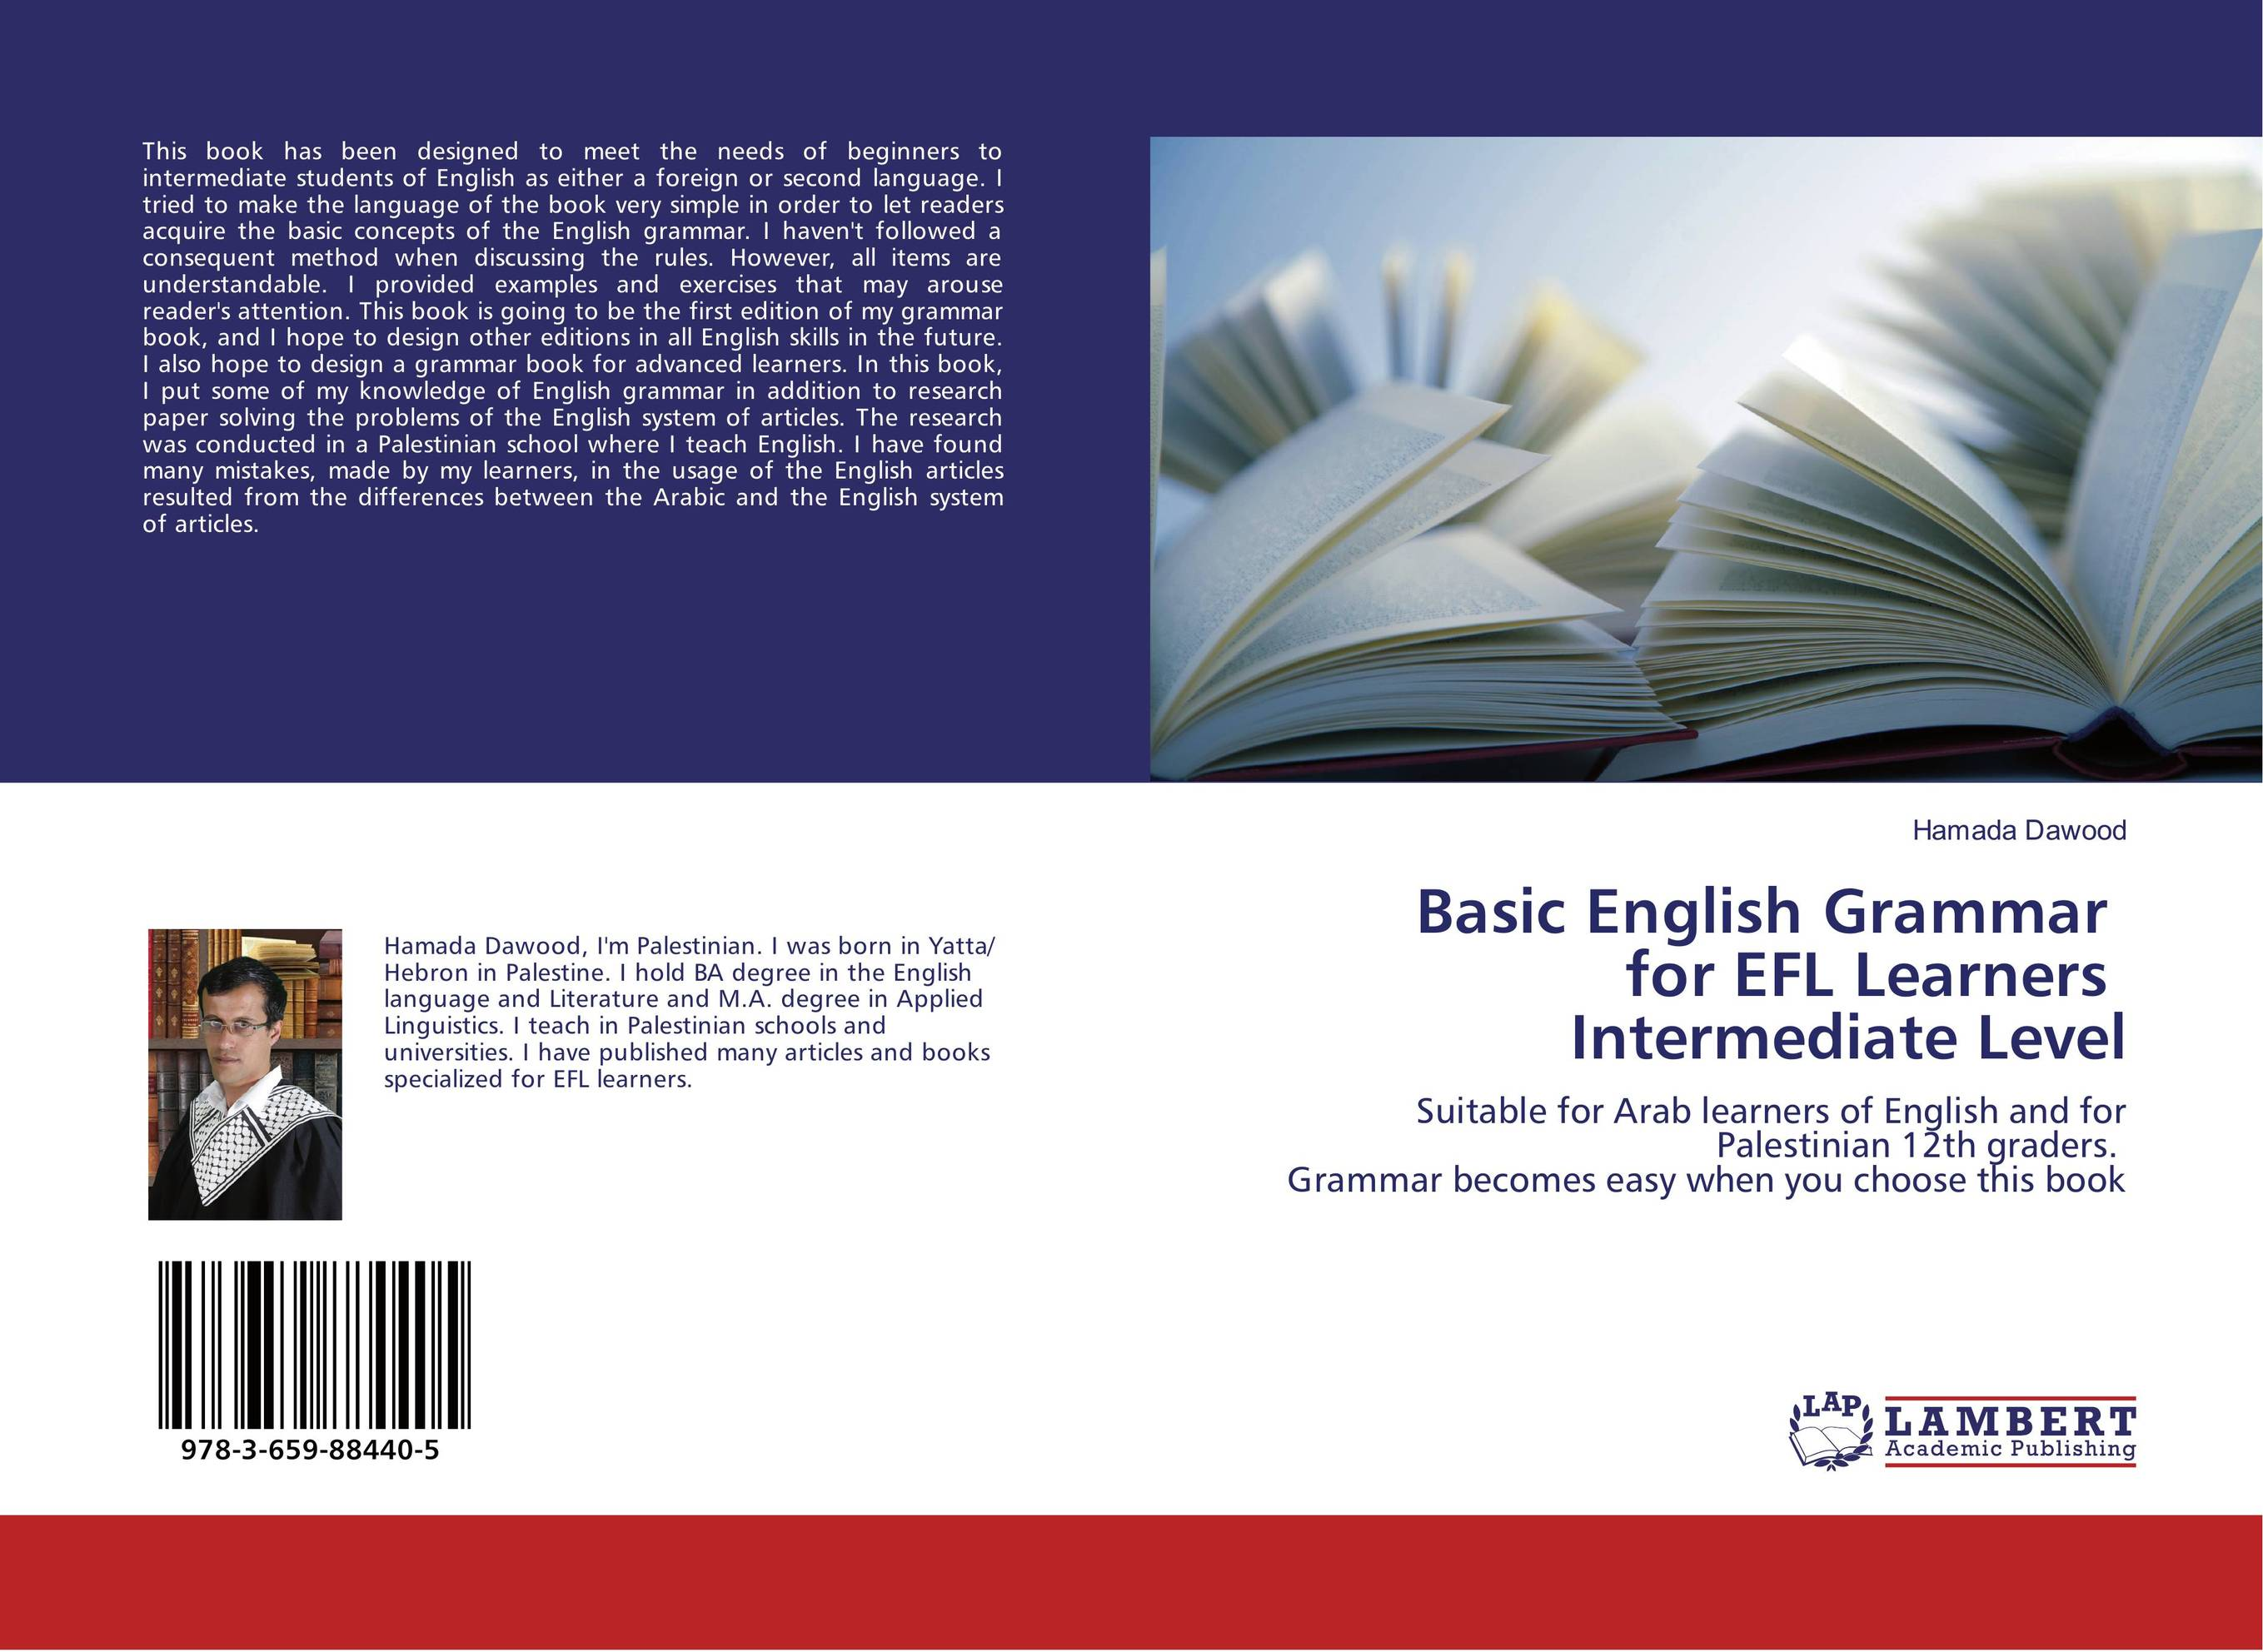 Basic English Grammar for EFL Learners Intermediate Level the role of ict in the teaching of english as a foreign language efl